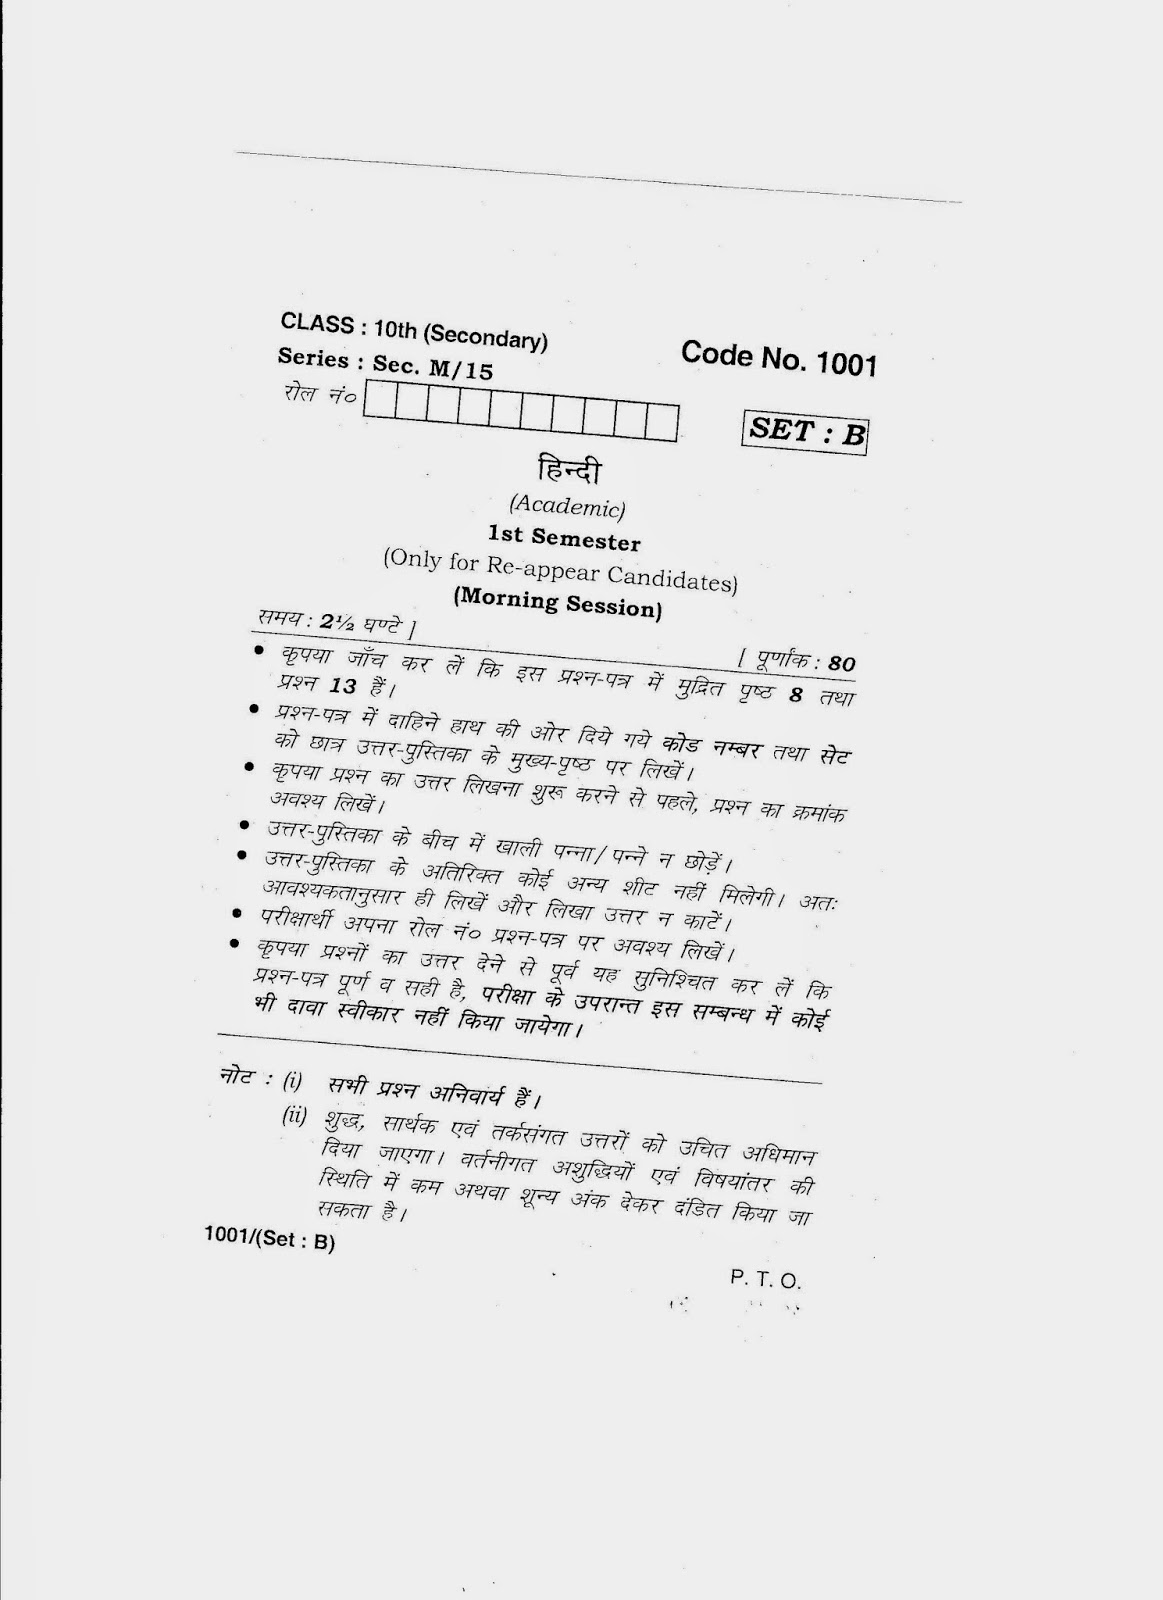 Previous year hindi question paper for class 10th hbse